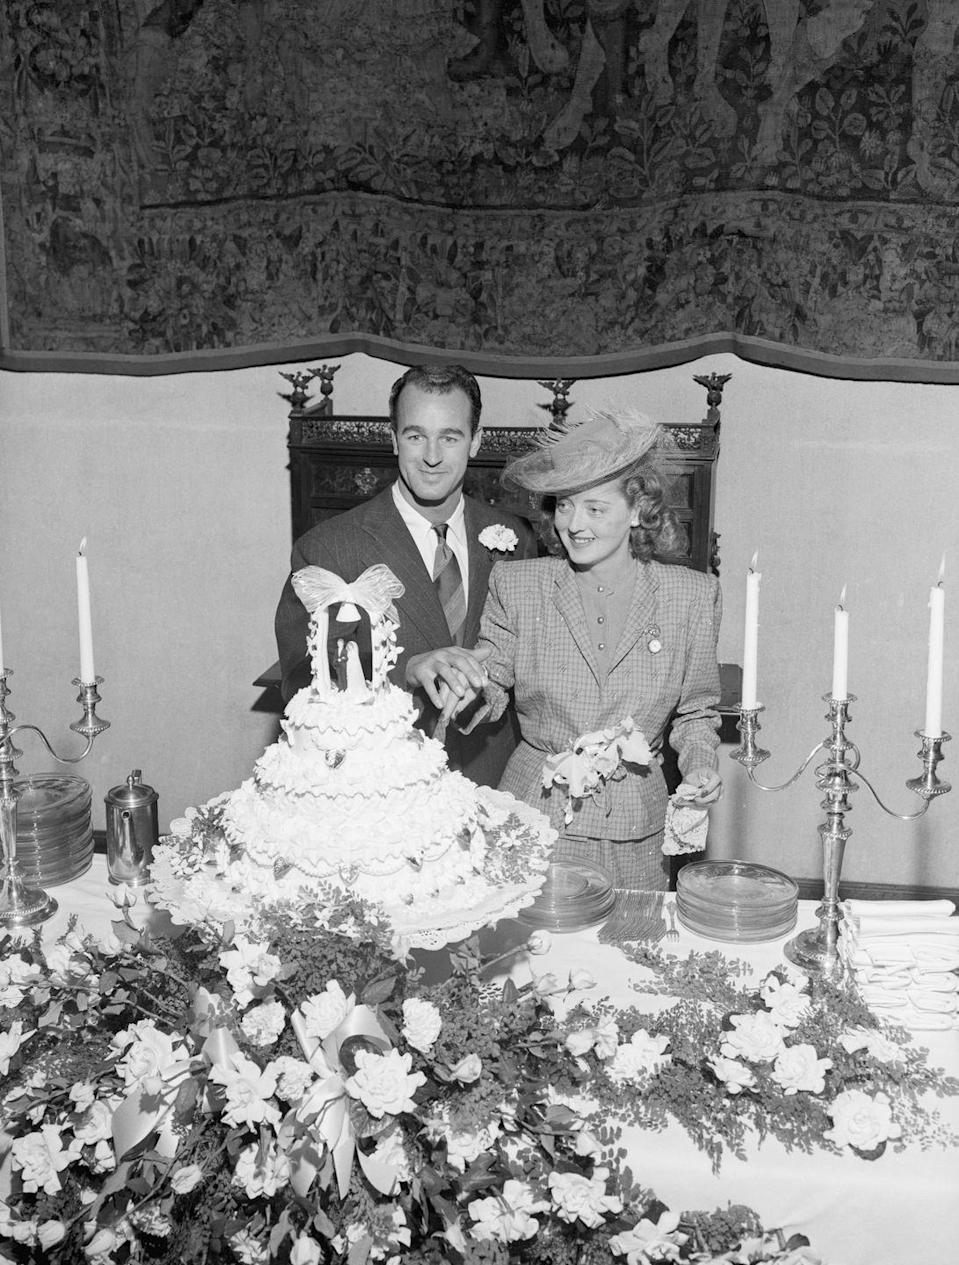 <p>In keeping with tradition, Bette Davis did not wear white for her third marriage, which was to William Grant Sherry in 1945. Instead, the bride went with a plaid suit dress and a veiled flat hat. </p>